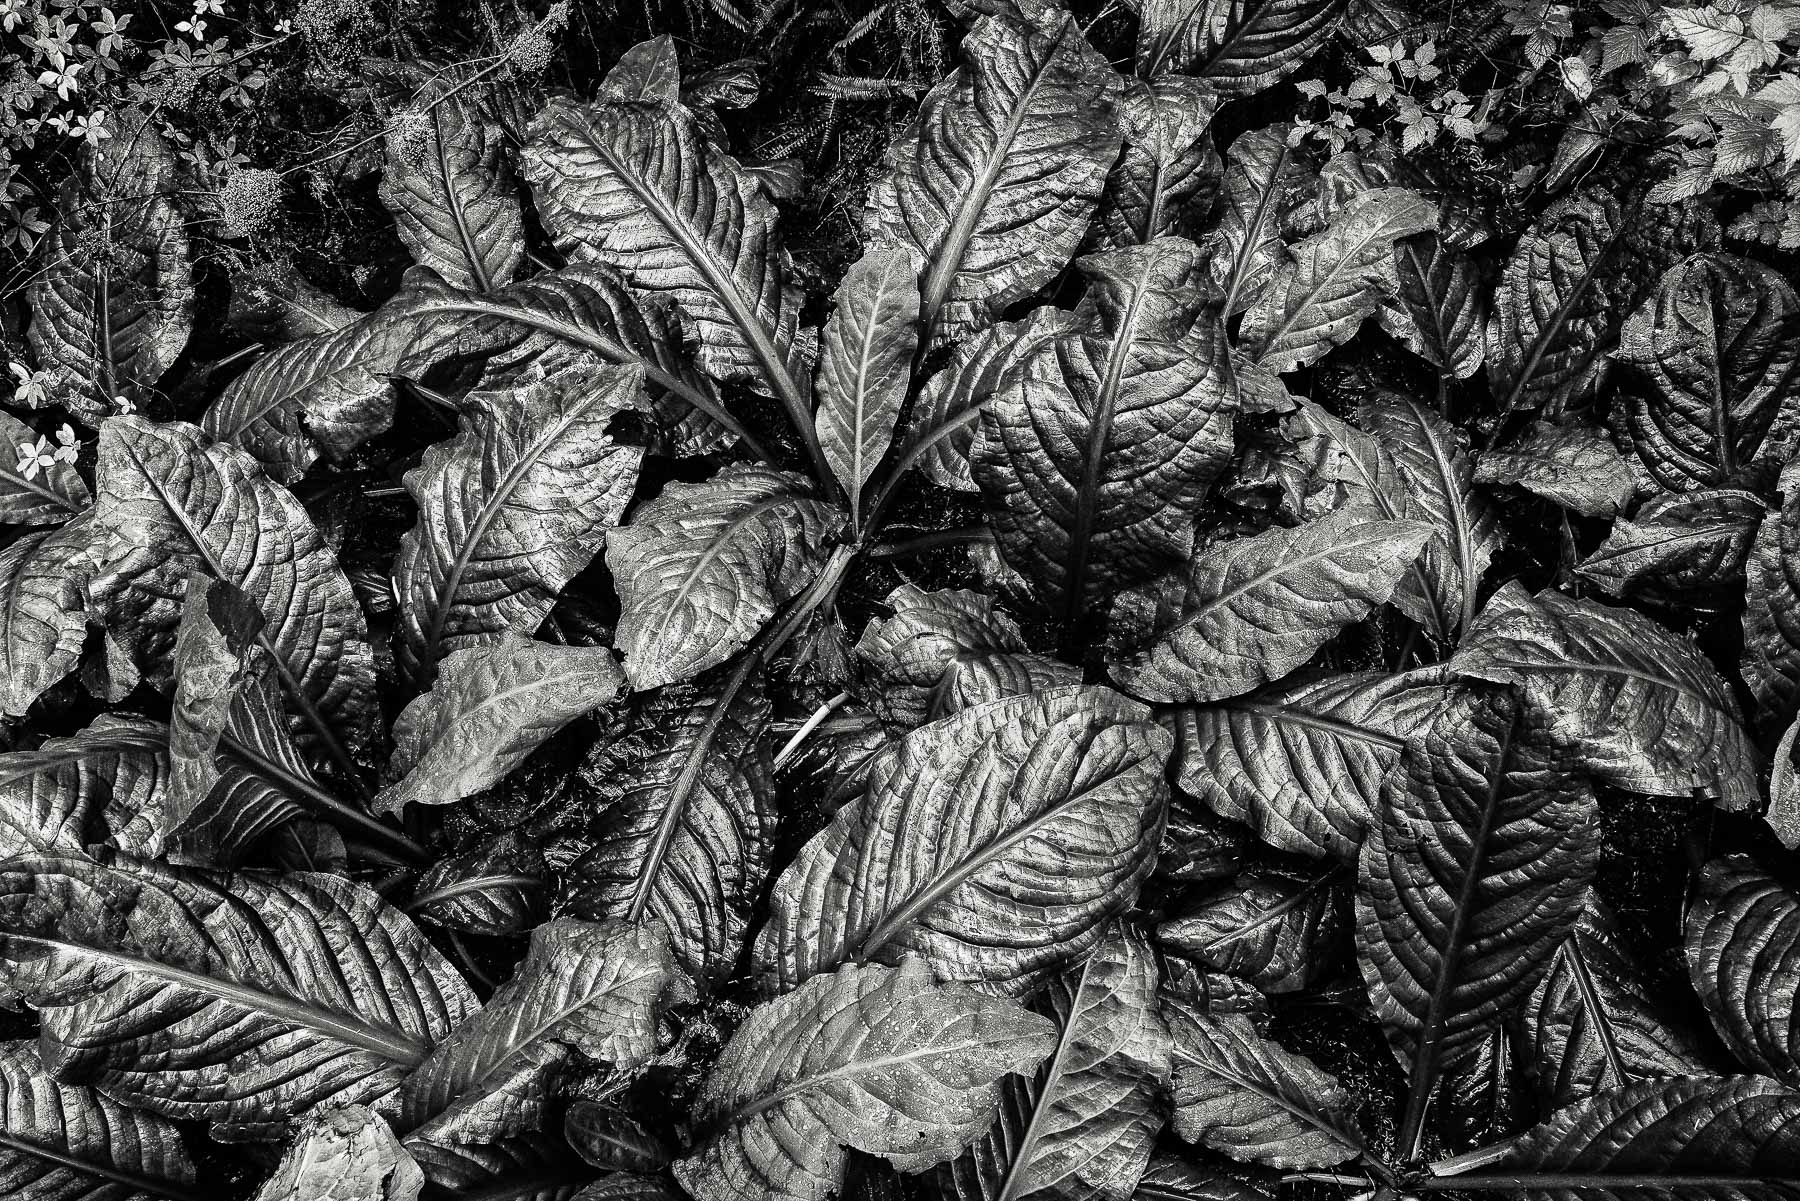 leaves, rainforest, Canada, British Columbia, Vancouver Island, , photo